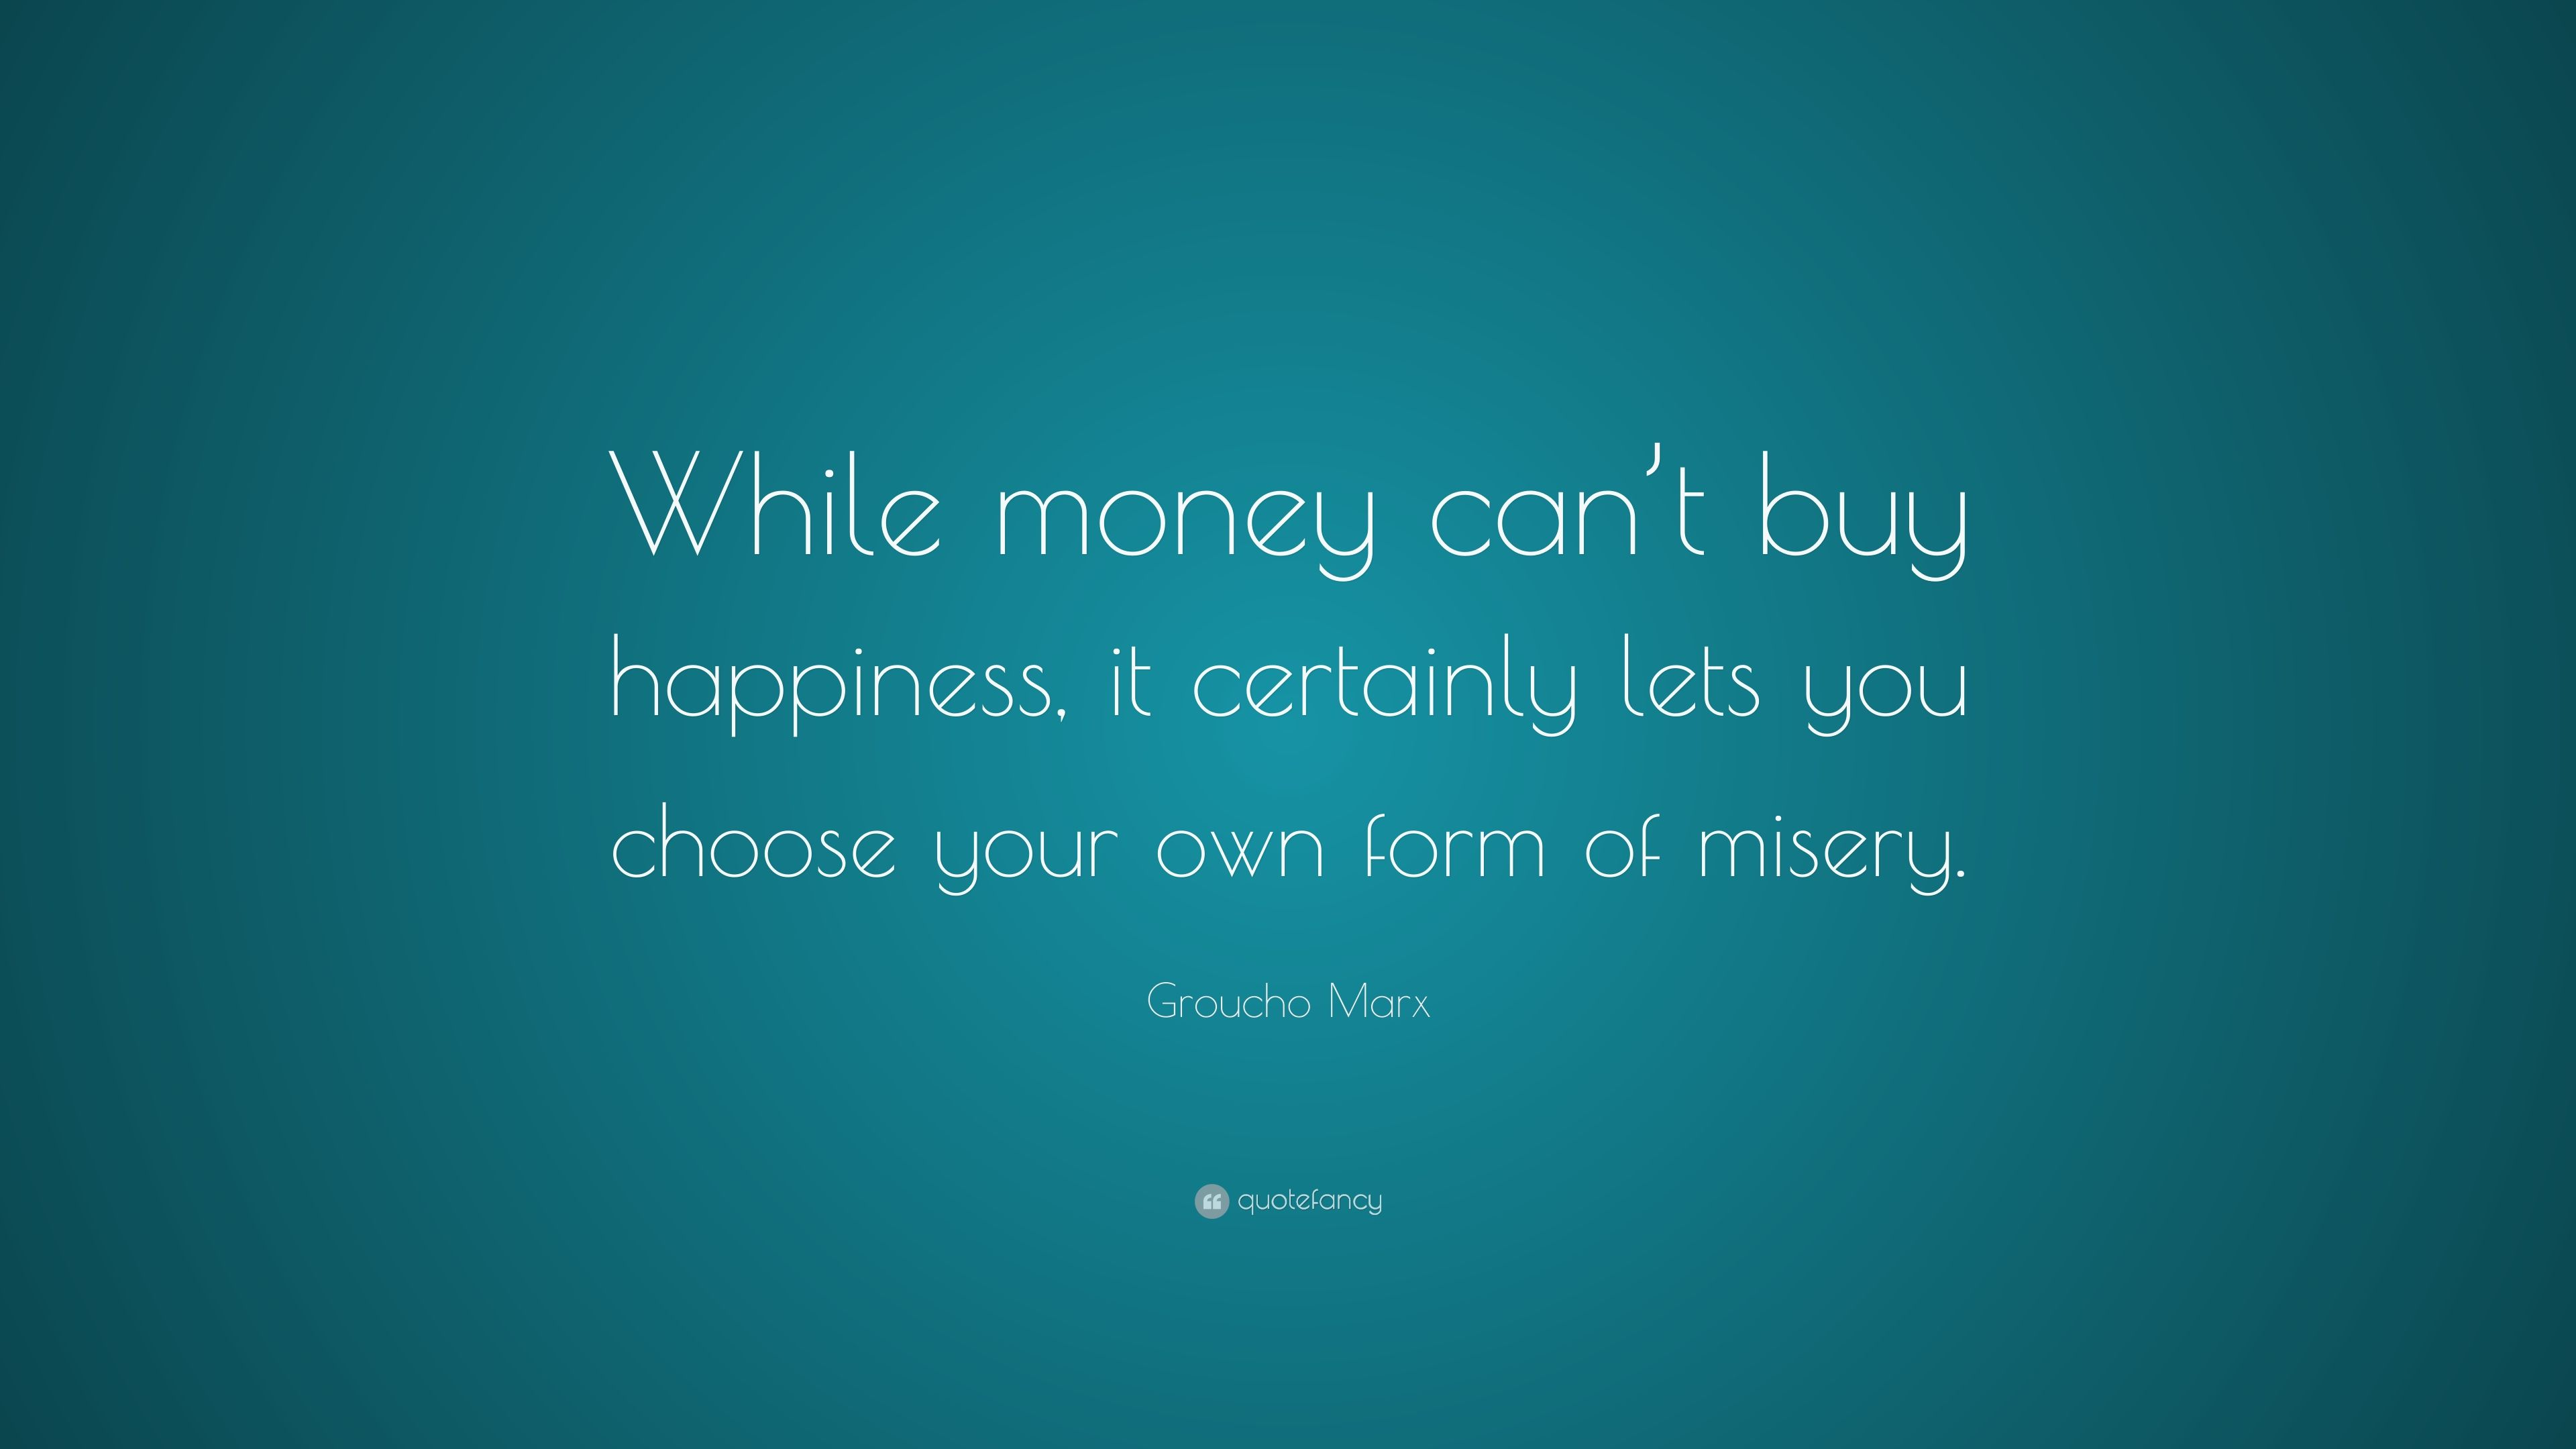 "Money Can T Buy Happiness Quote: Groucho Marx Quote: ""While Money Can't Buy Happiness, It"